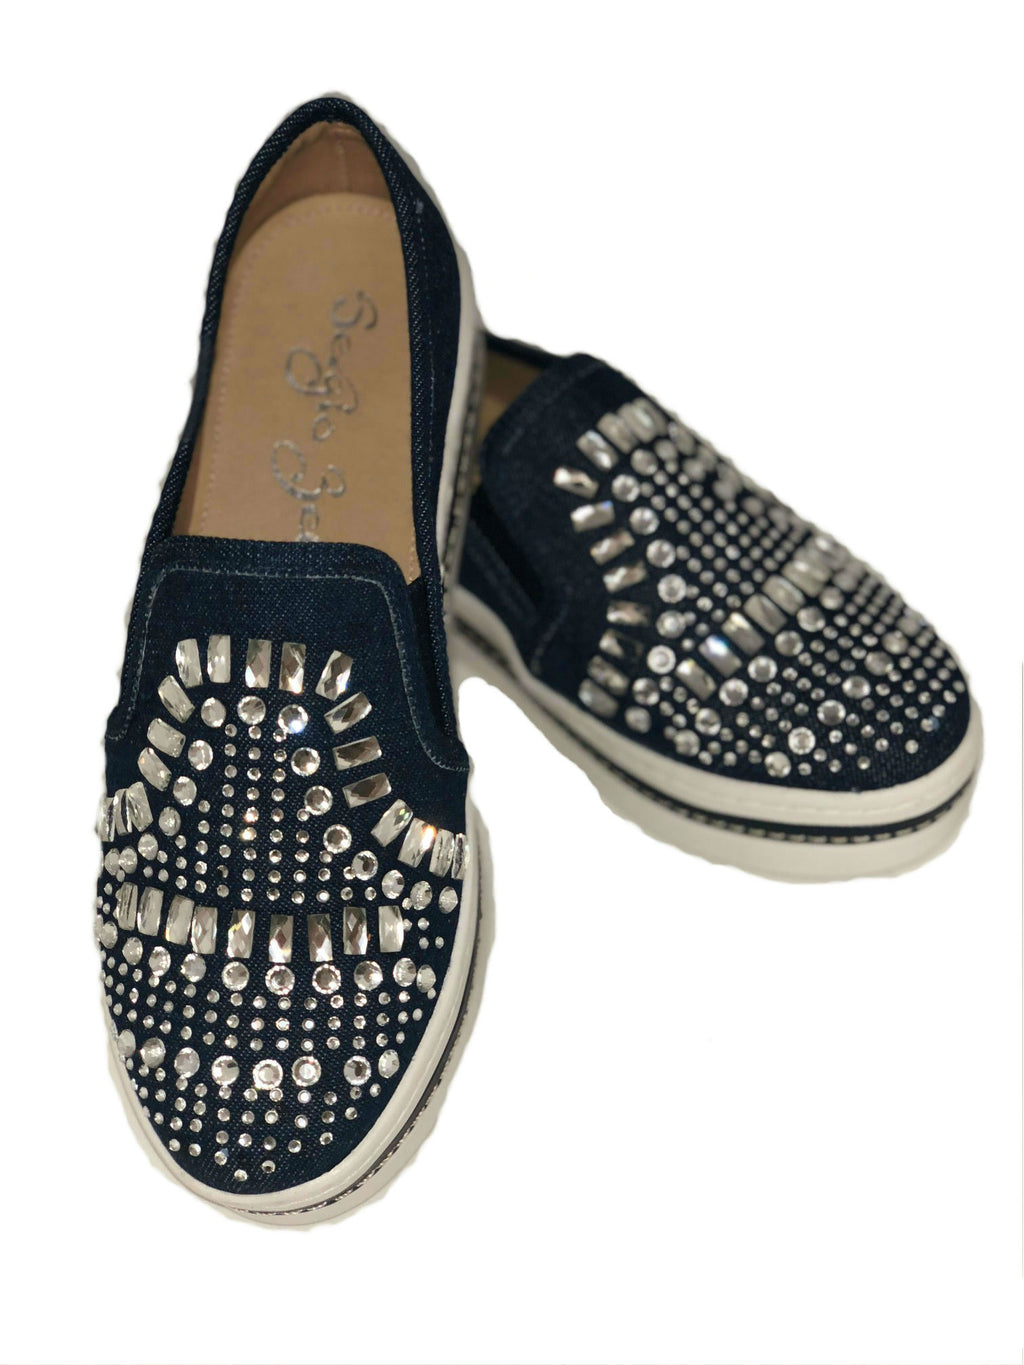 denim slip on shoe with rhinestones and comfort insole flat boat shoe casual shoes with rhinestones